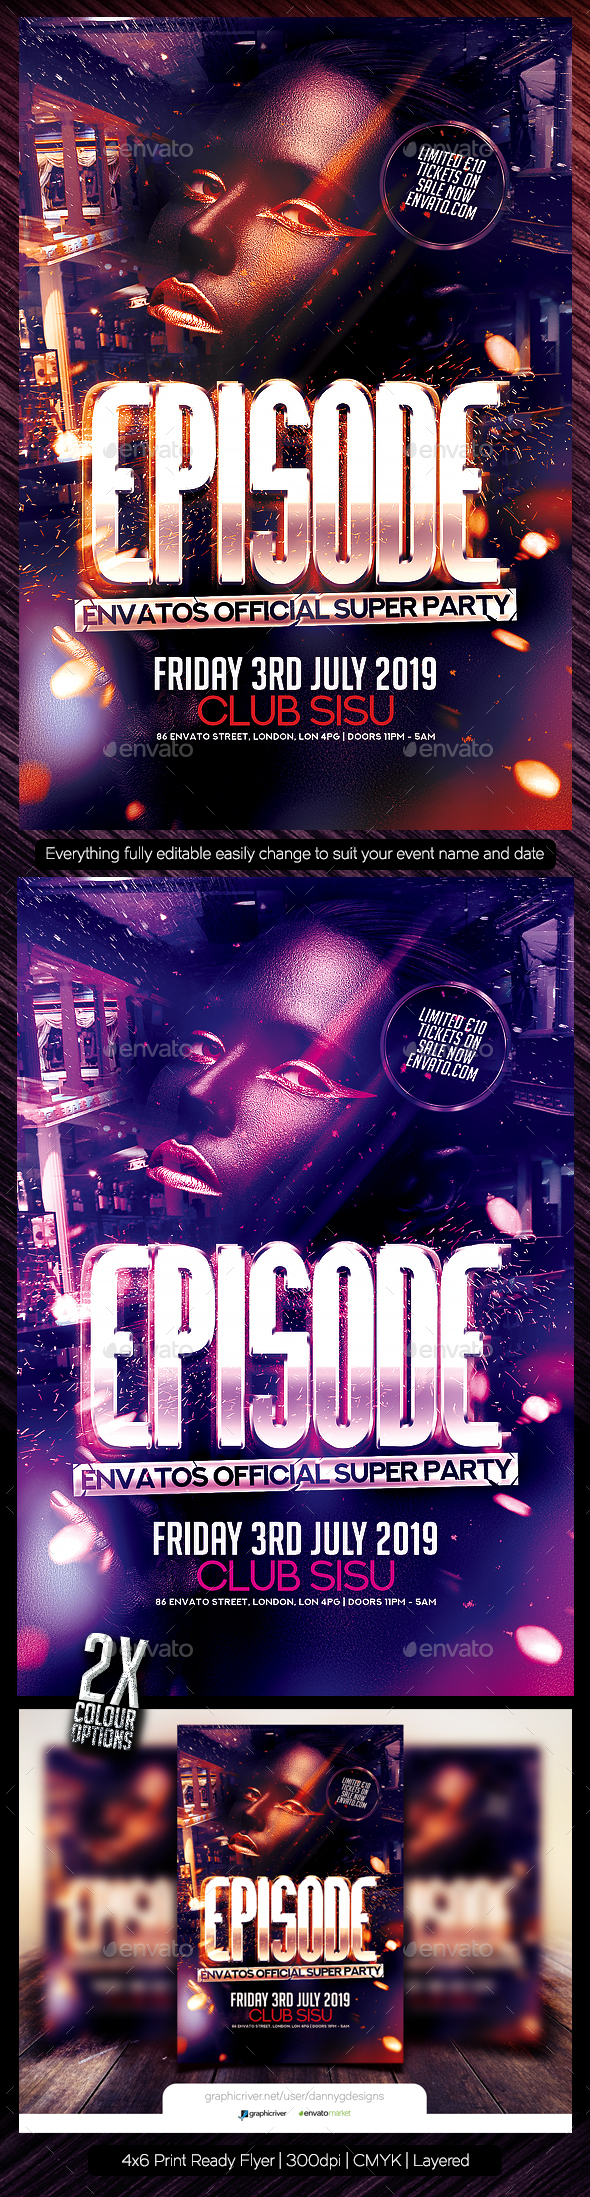 Episode Flyer Template PSD - Clubs & Parties Events